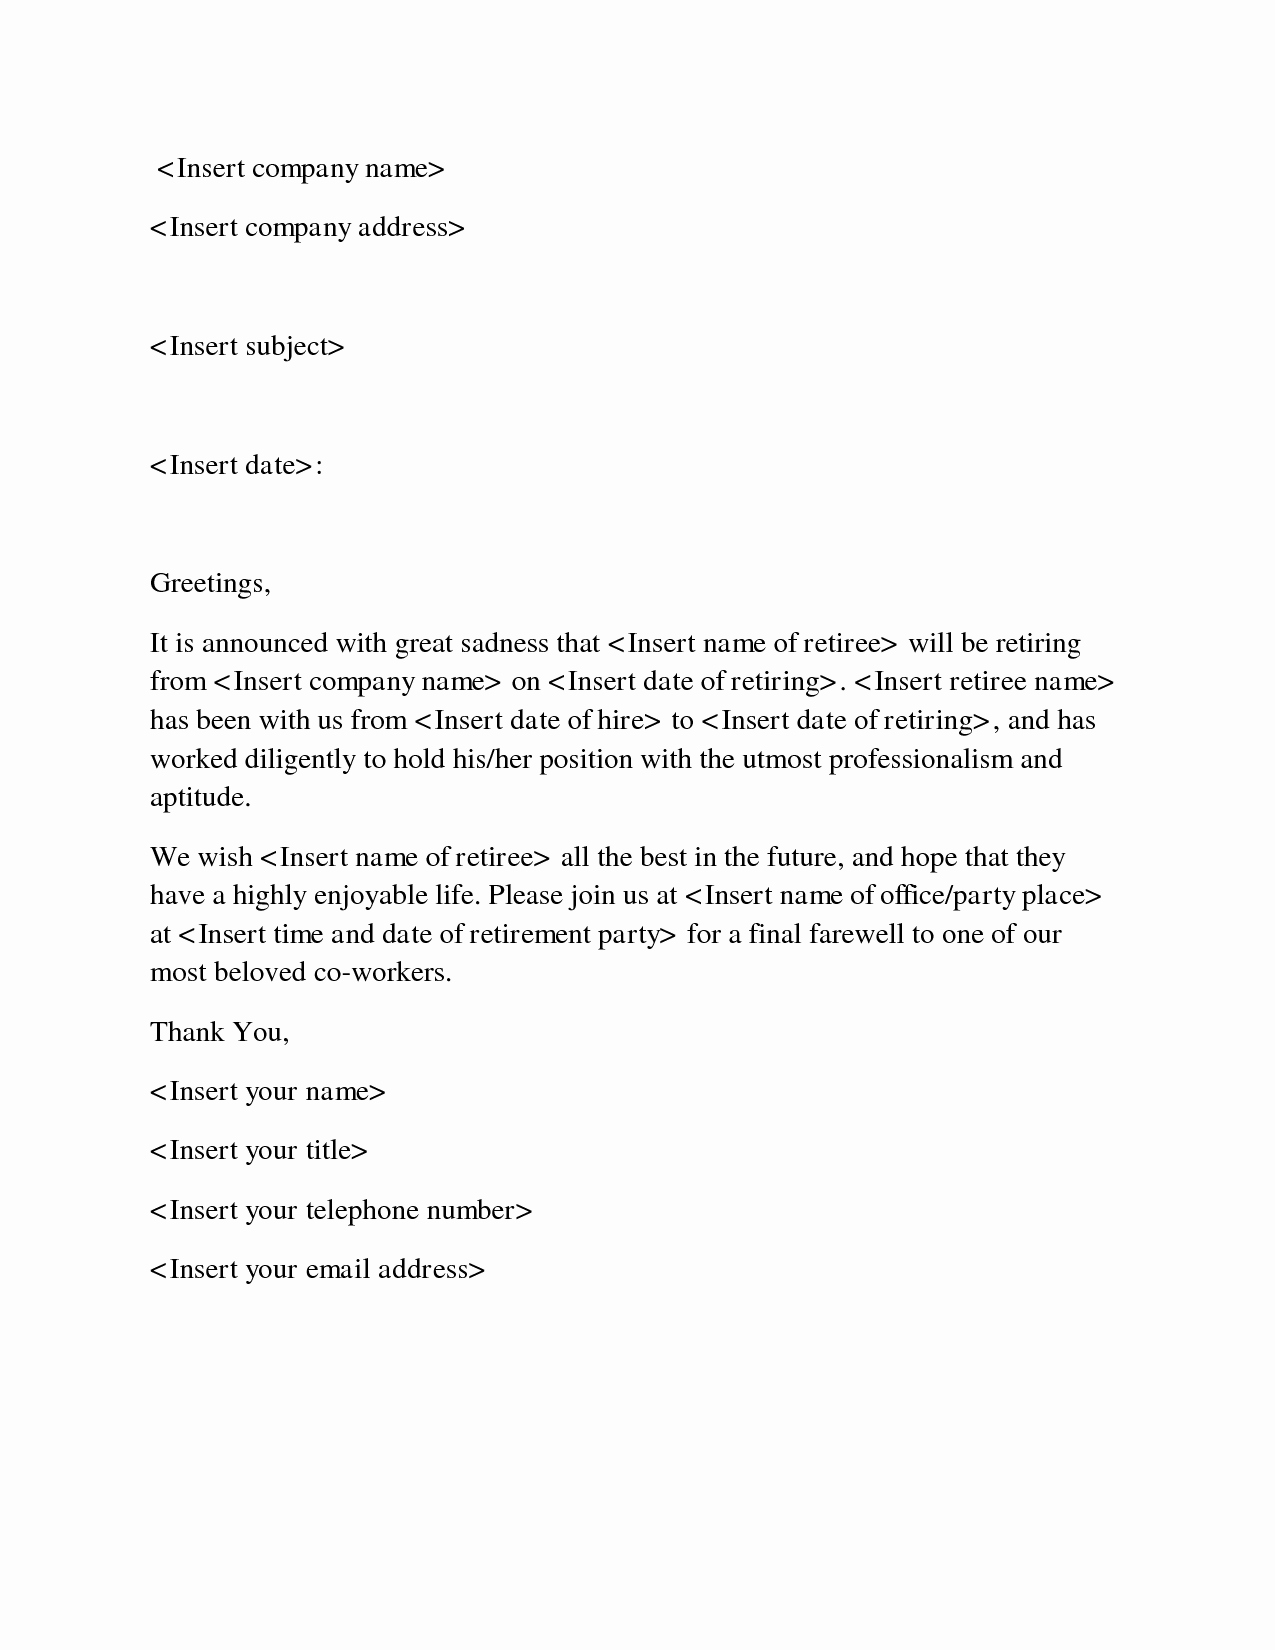 Farewell Letter to Colleagues Inspirational Goodbye Letter to Coworker Letters to Say Goodbye to Co